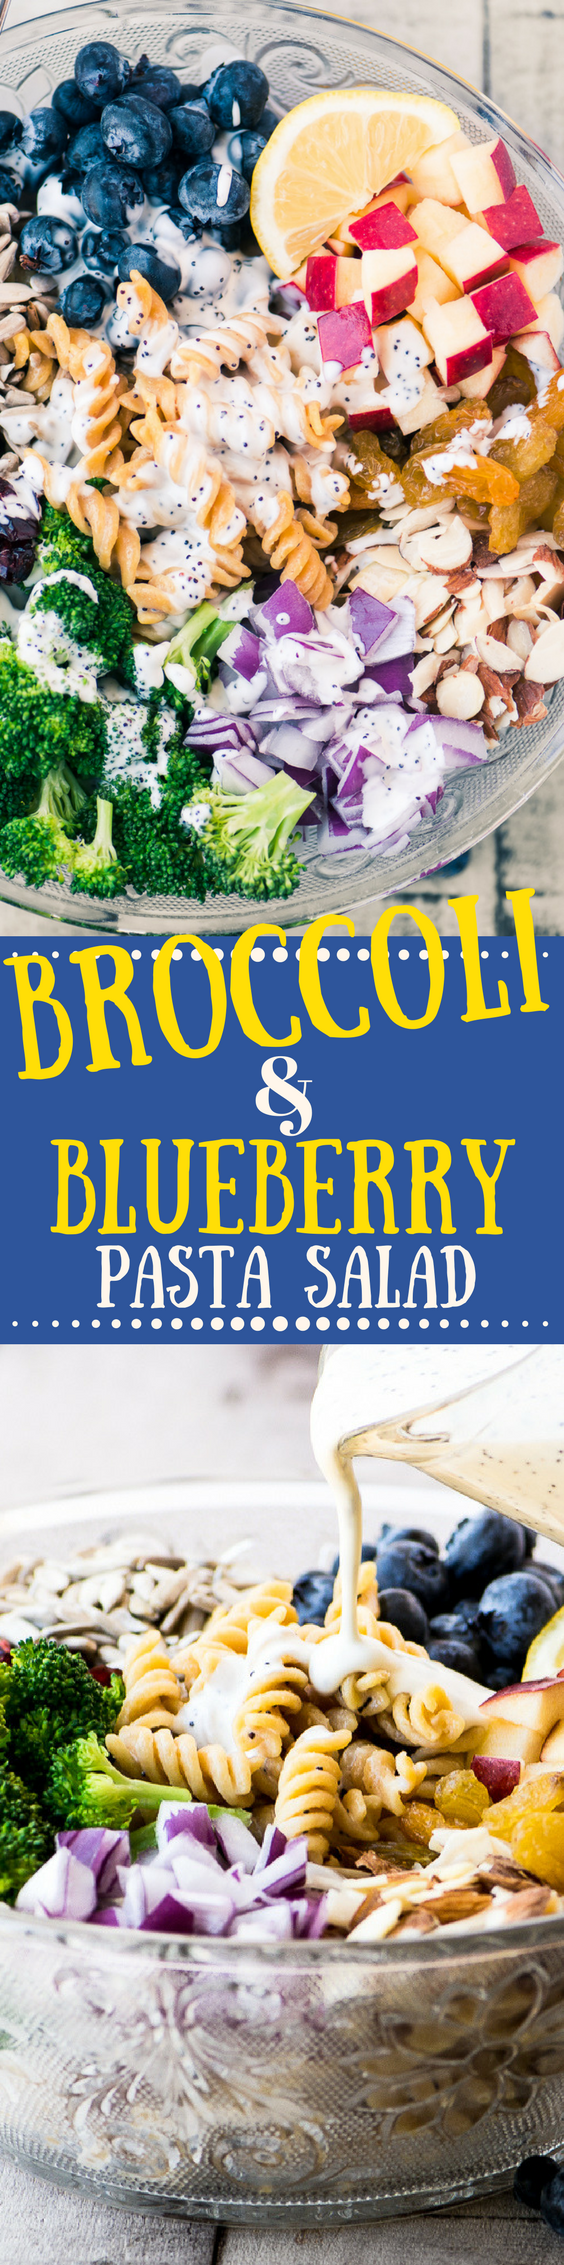 Broccoli and Blueberry Pasta Salad with Lemon Buttermilk Dressing ~ this healthy and colorful salad is made with delicious Chickapea gluten free pasta ~ |salad | gluten free | picnic | Memorial Day | 4th of July |